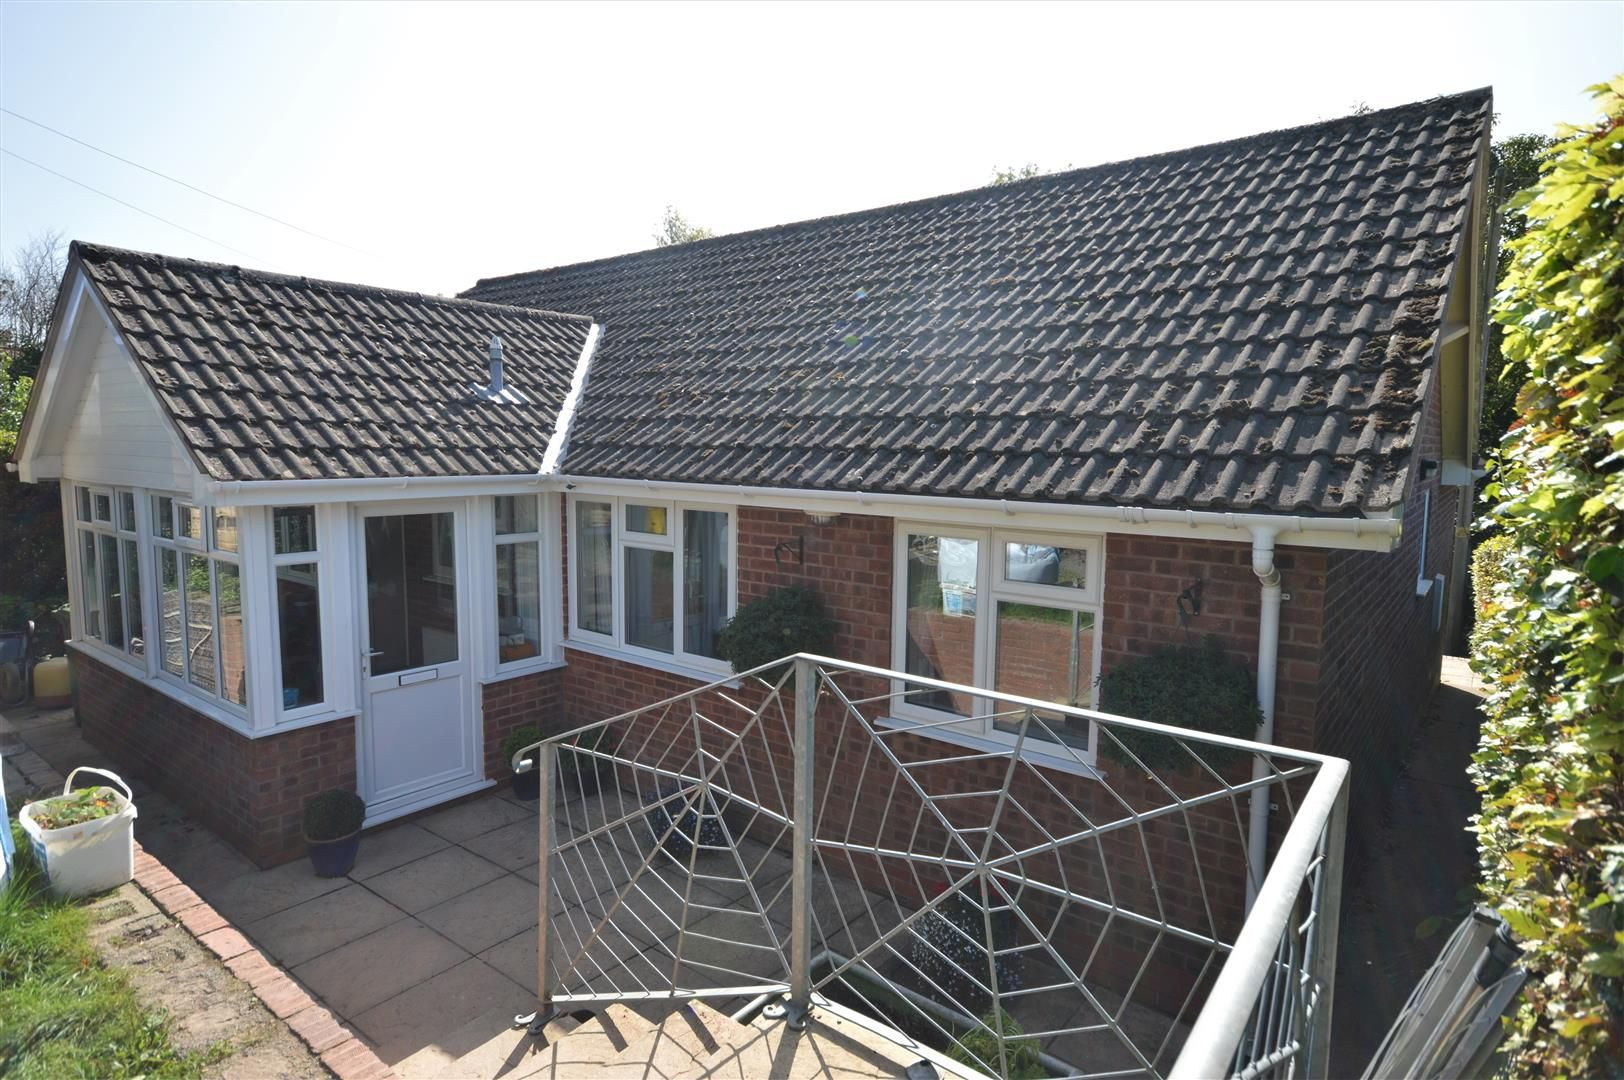 3 bed detached bungalow for sale in Pencombe, HR7